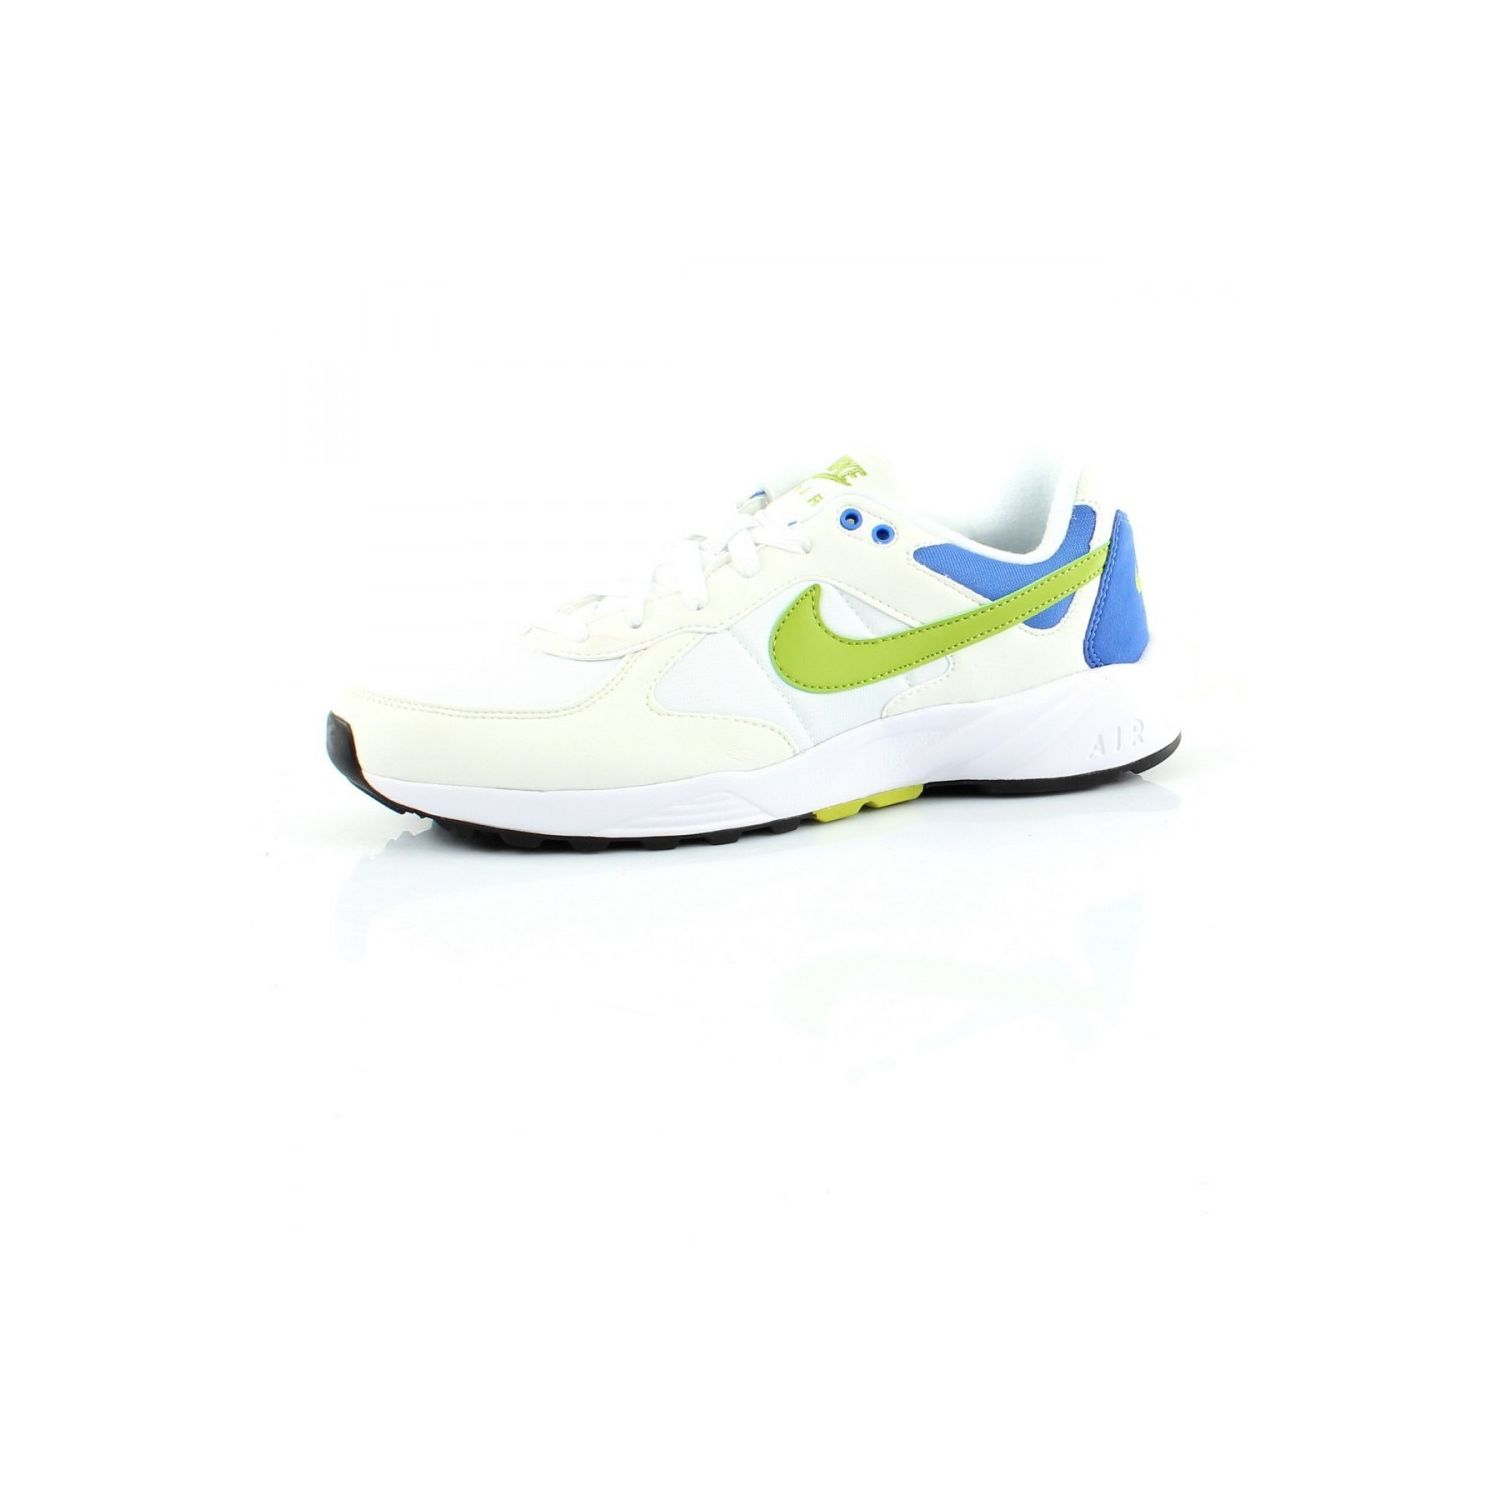 Nike - Chaussures de Running Air Icarus Nsw Blanc - pas cher Achat / Vente Chaussures running